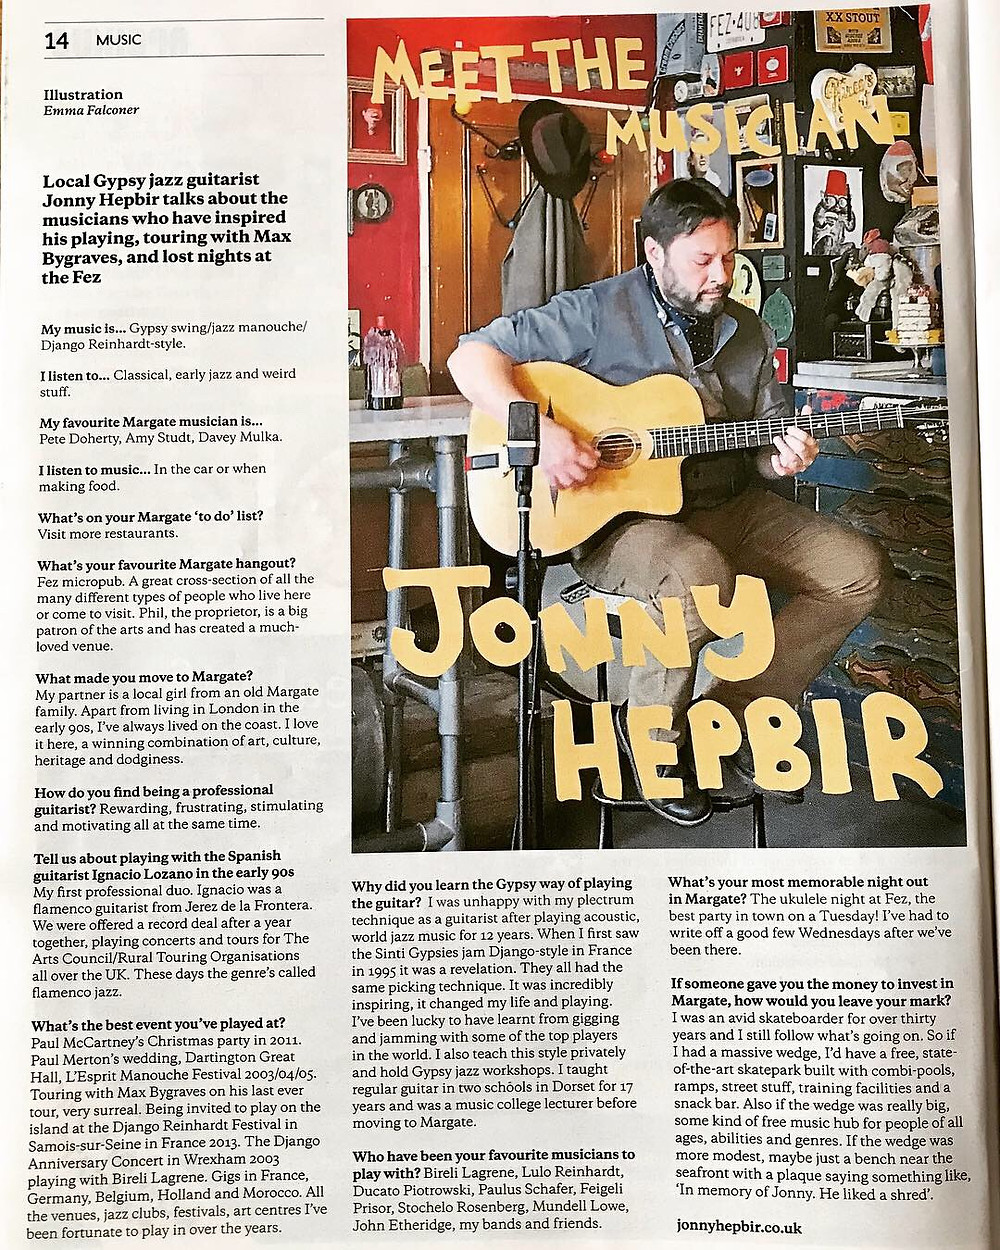 Jonny Hepbir Gypsy Jazz Guitarist Interview In Margate Mercury Kent